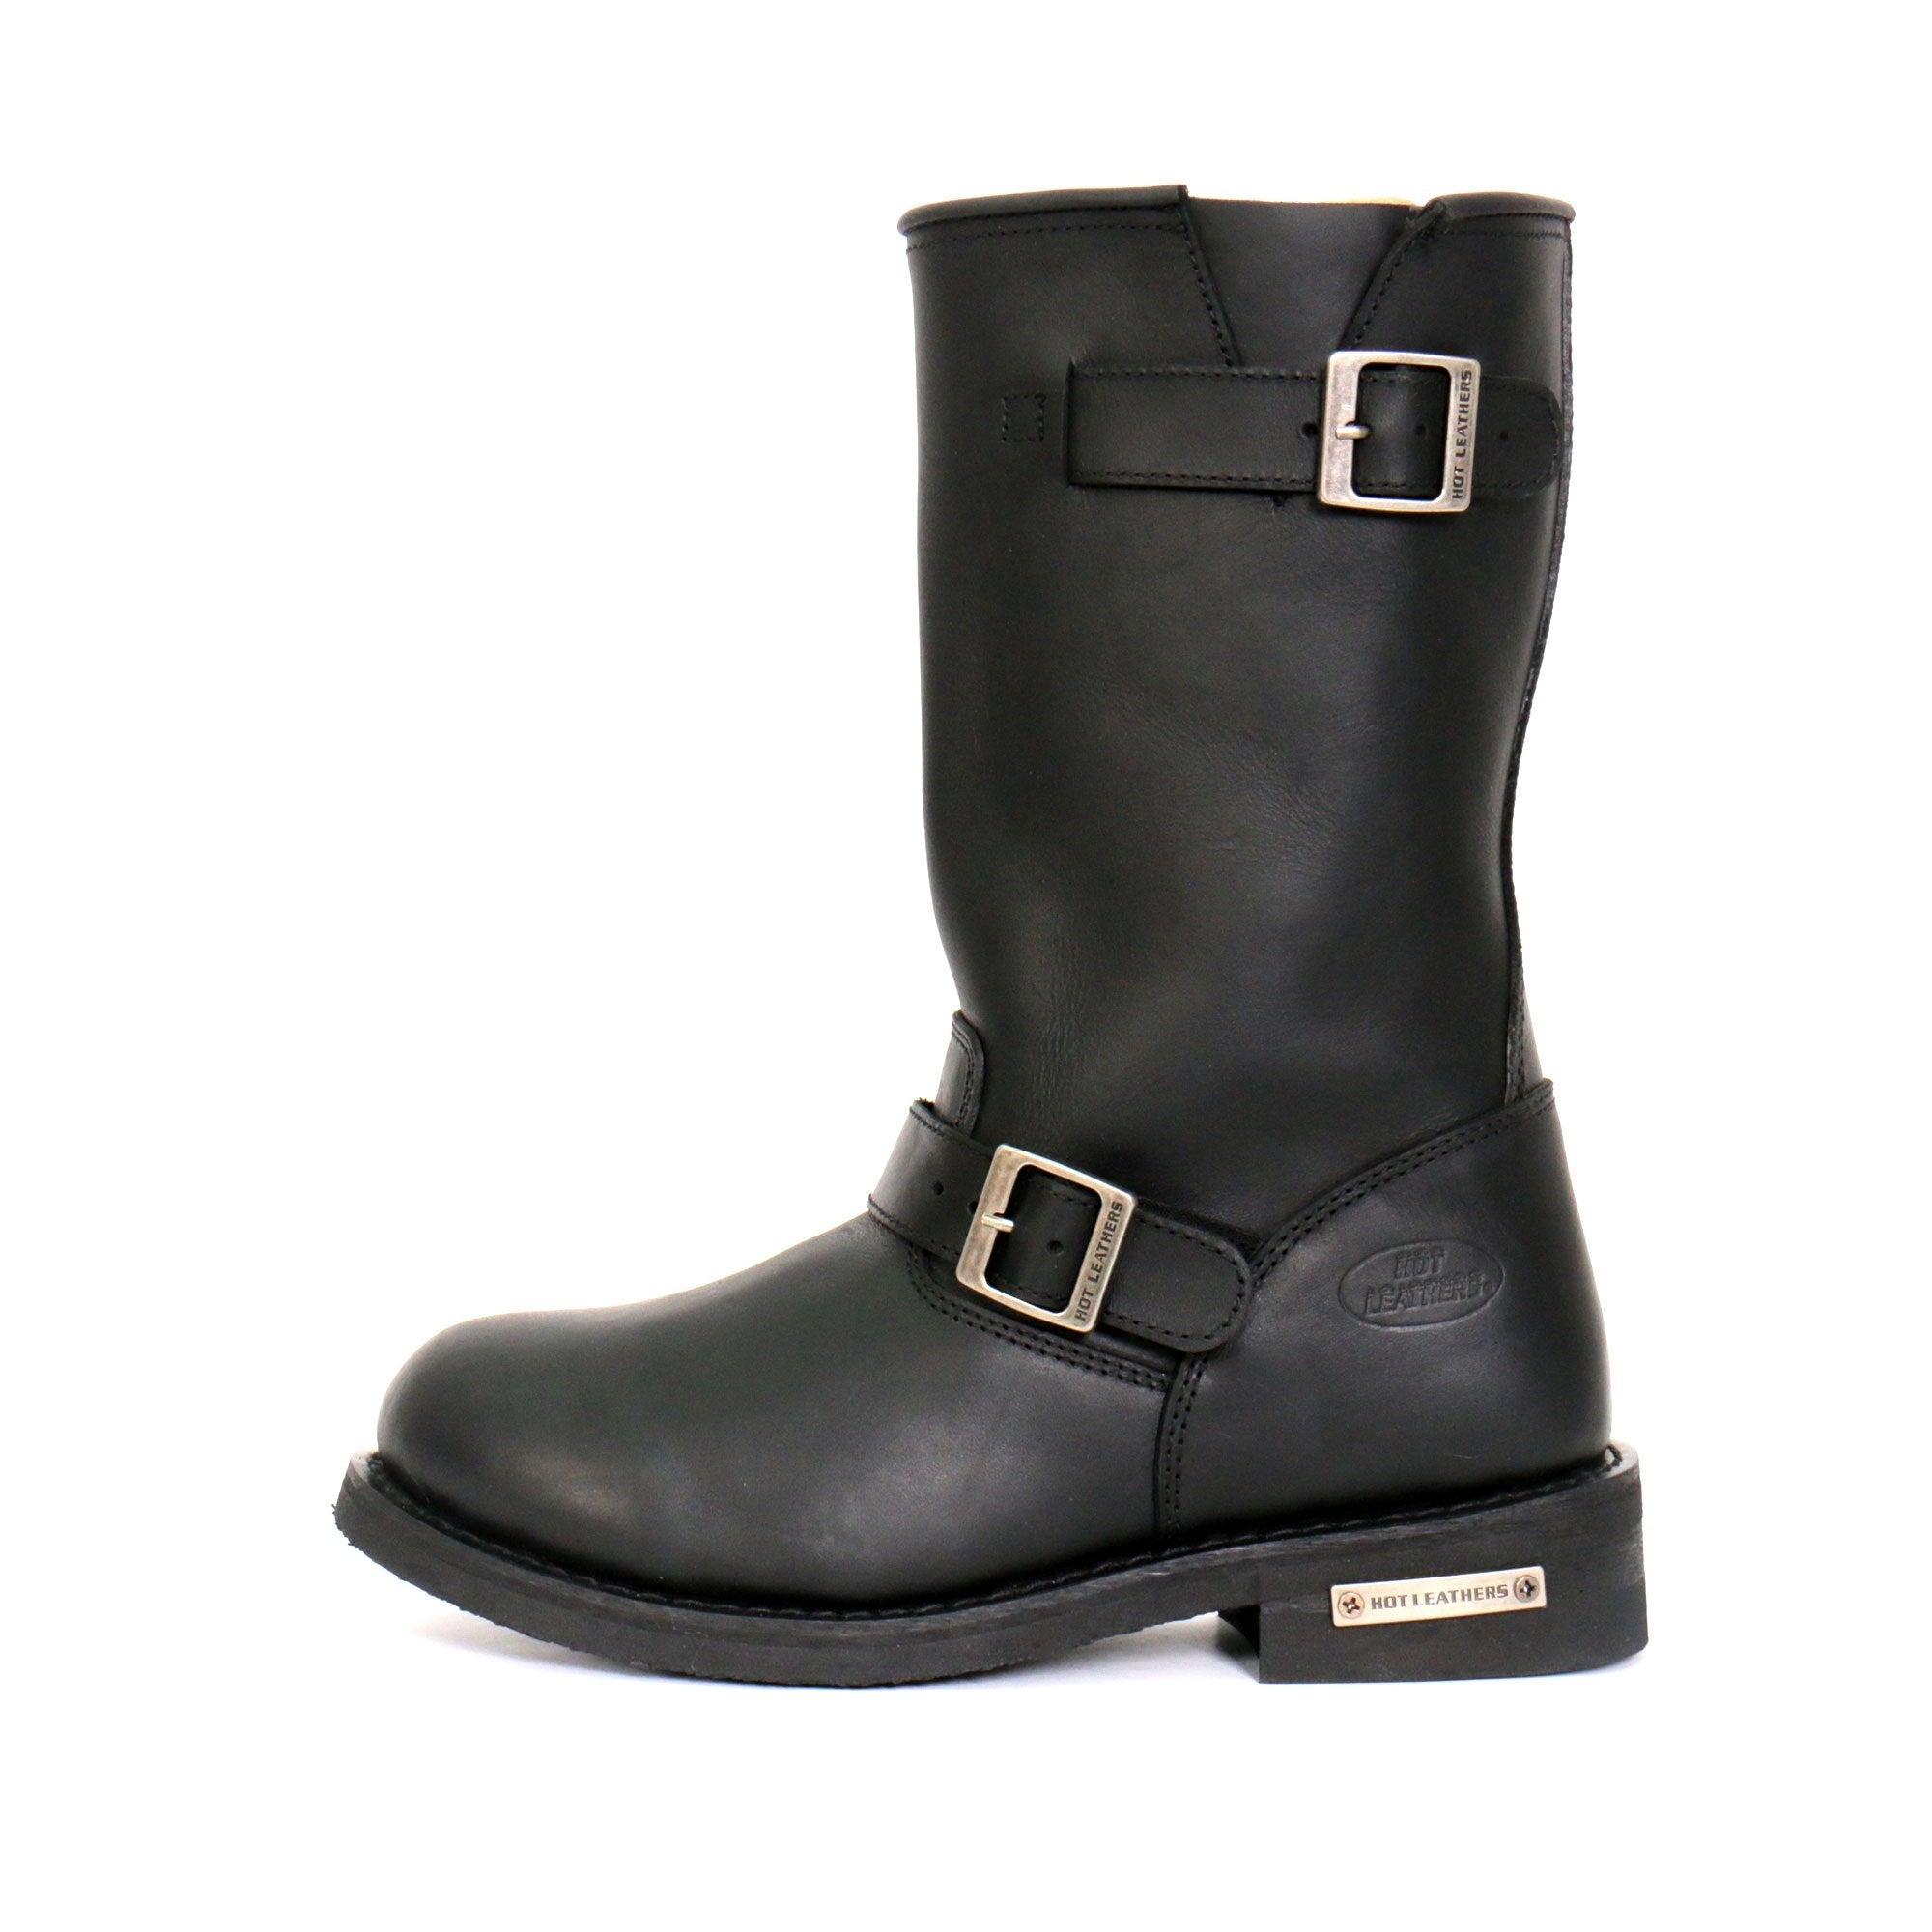 "Hot Leathers Men's 11"" Tall Round Toe Engineer Boots"